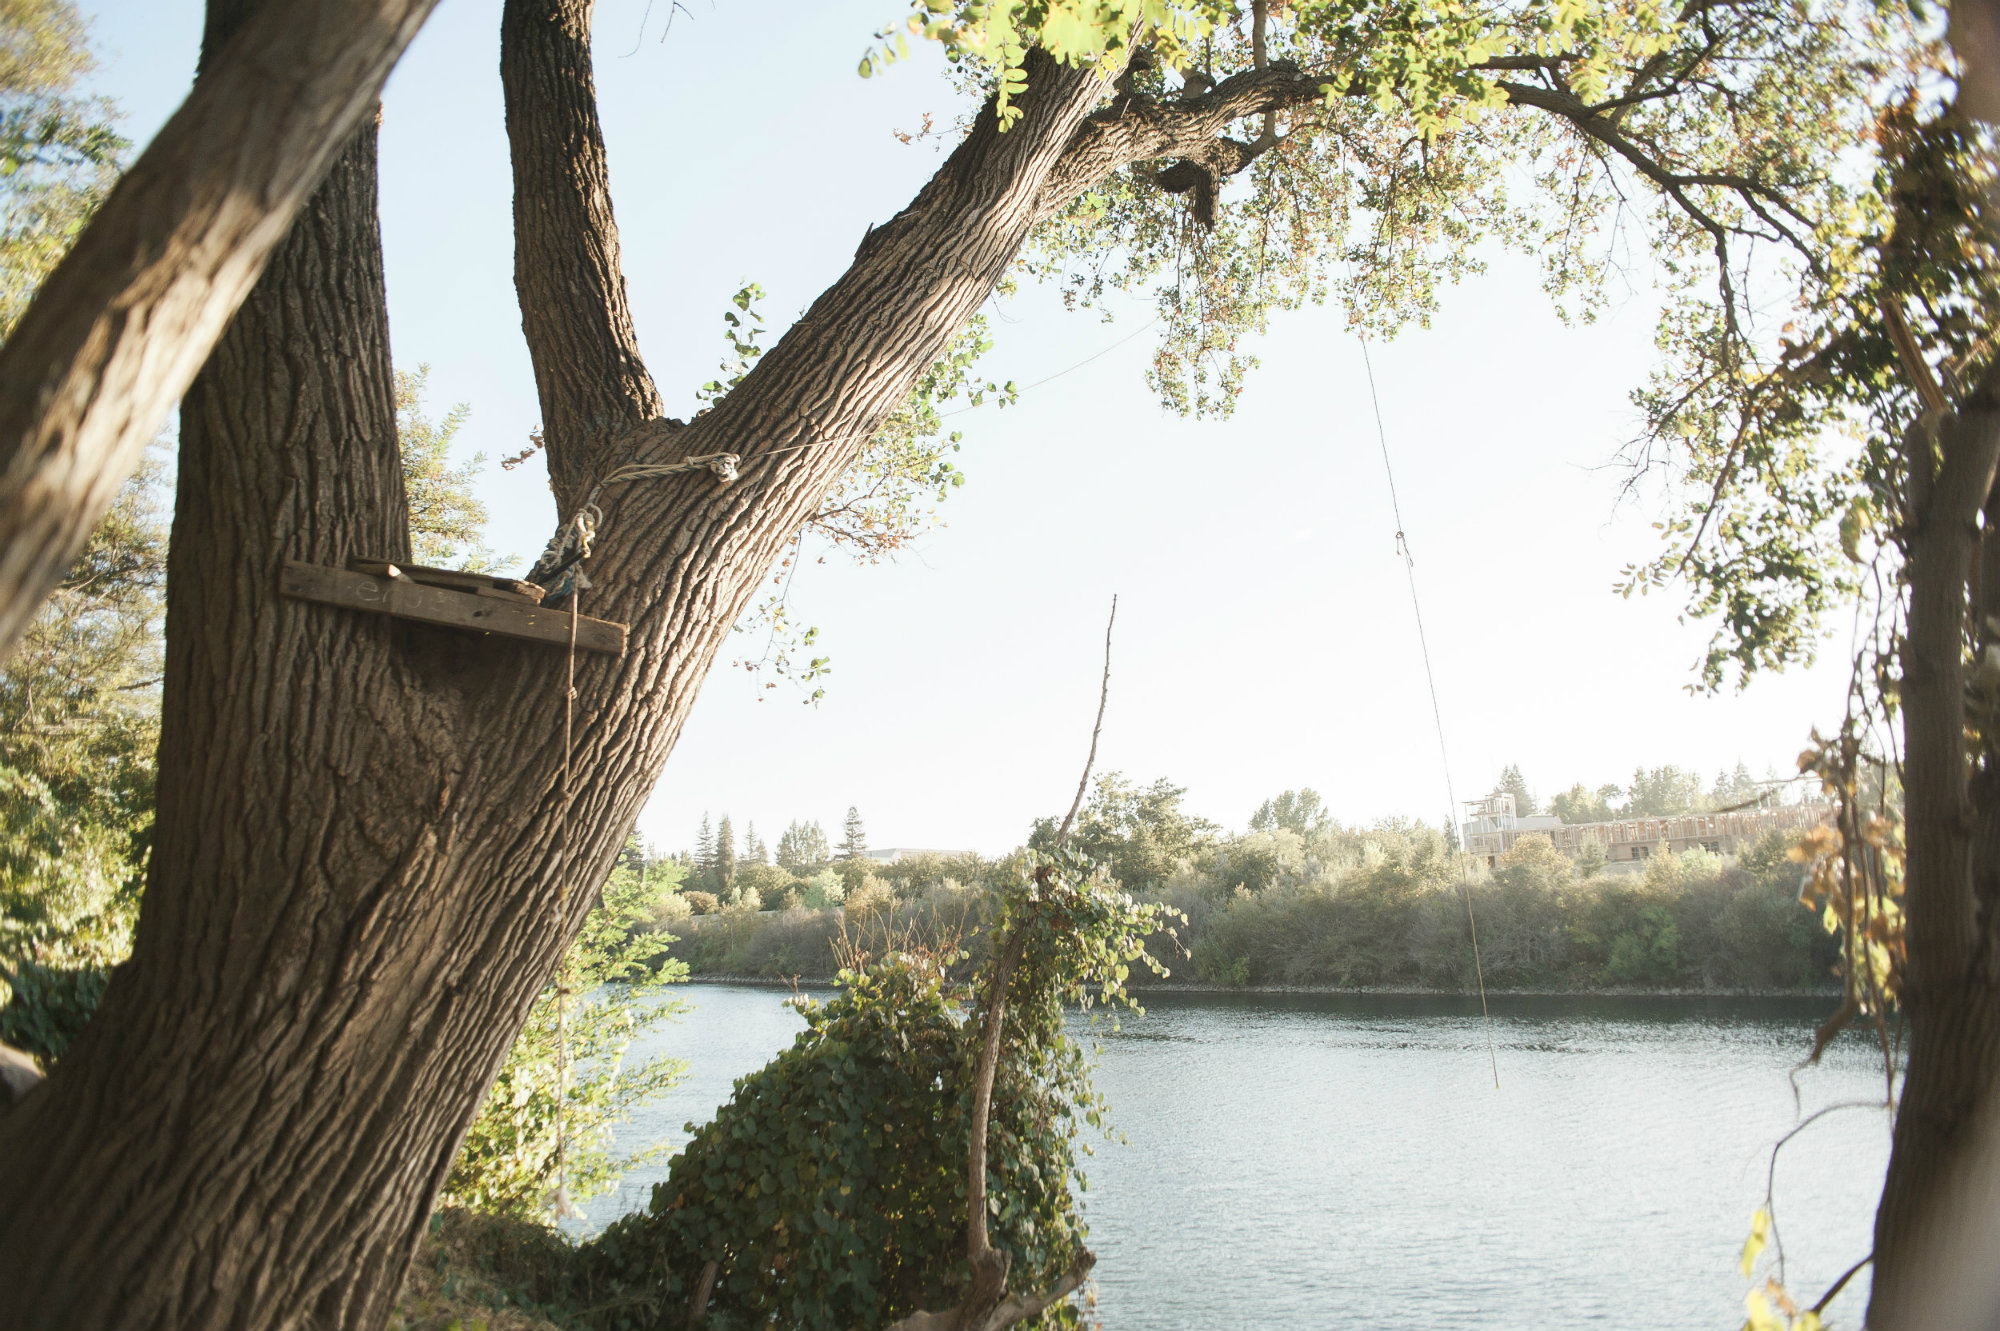 Rope swing by the American River  (Photo by Diana Rykun)